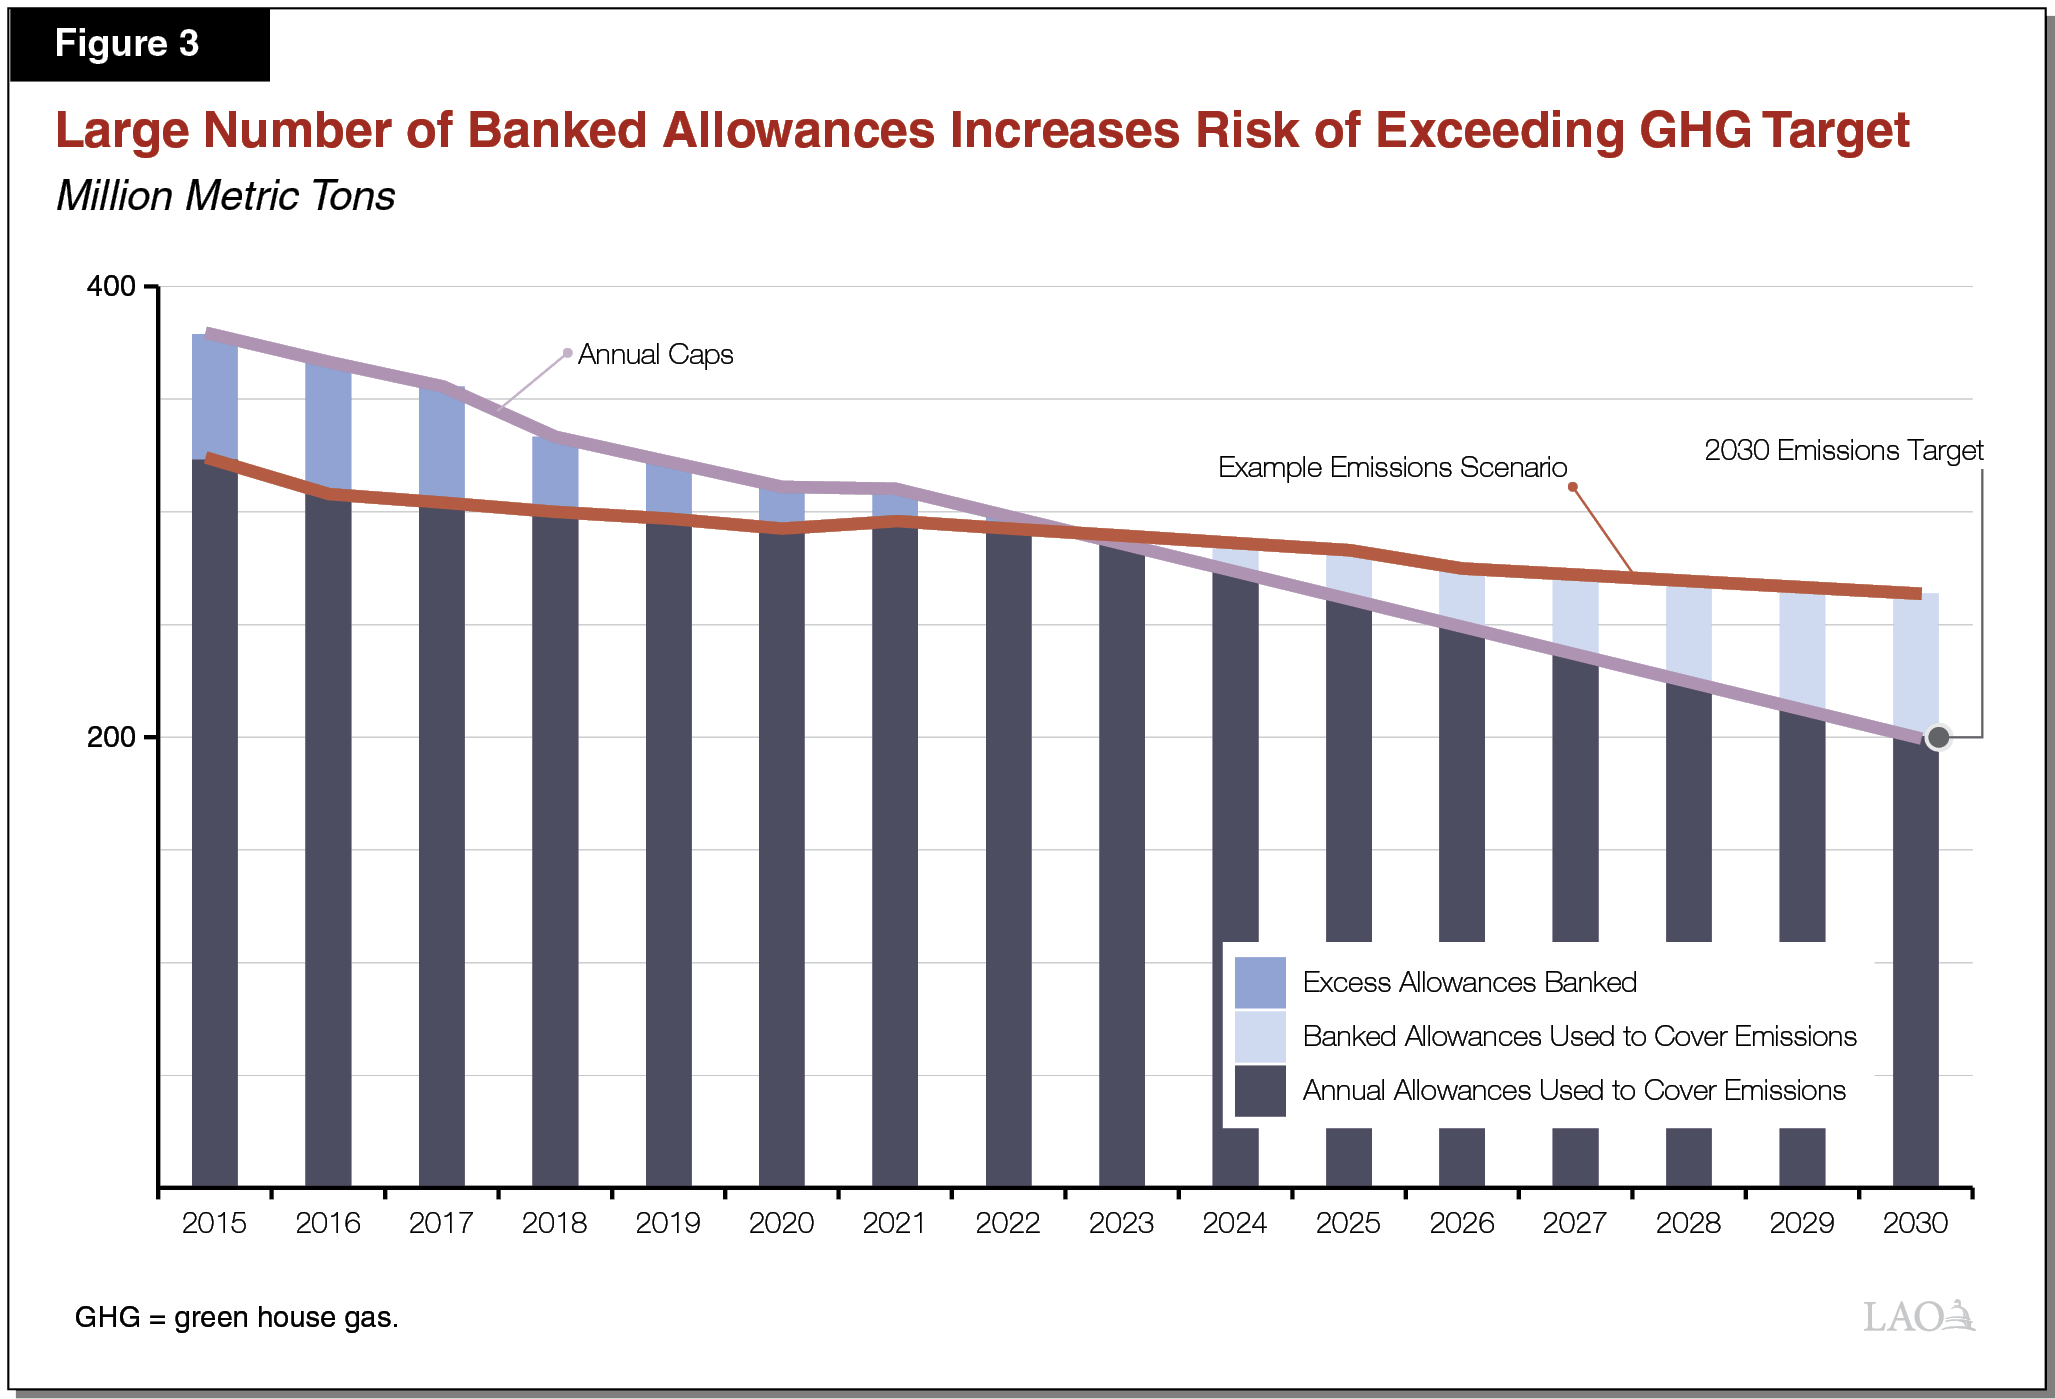 Figure 3 - Large Number of Banked Allowances Increases Risk of Exceeding GHG Target